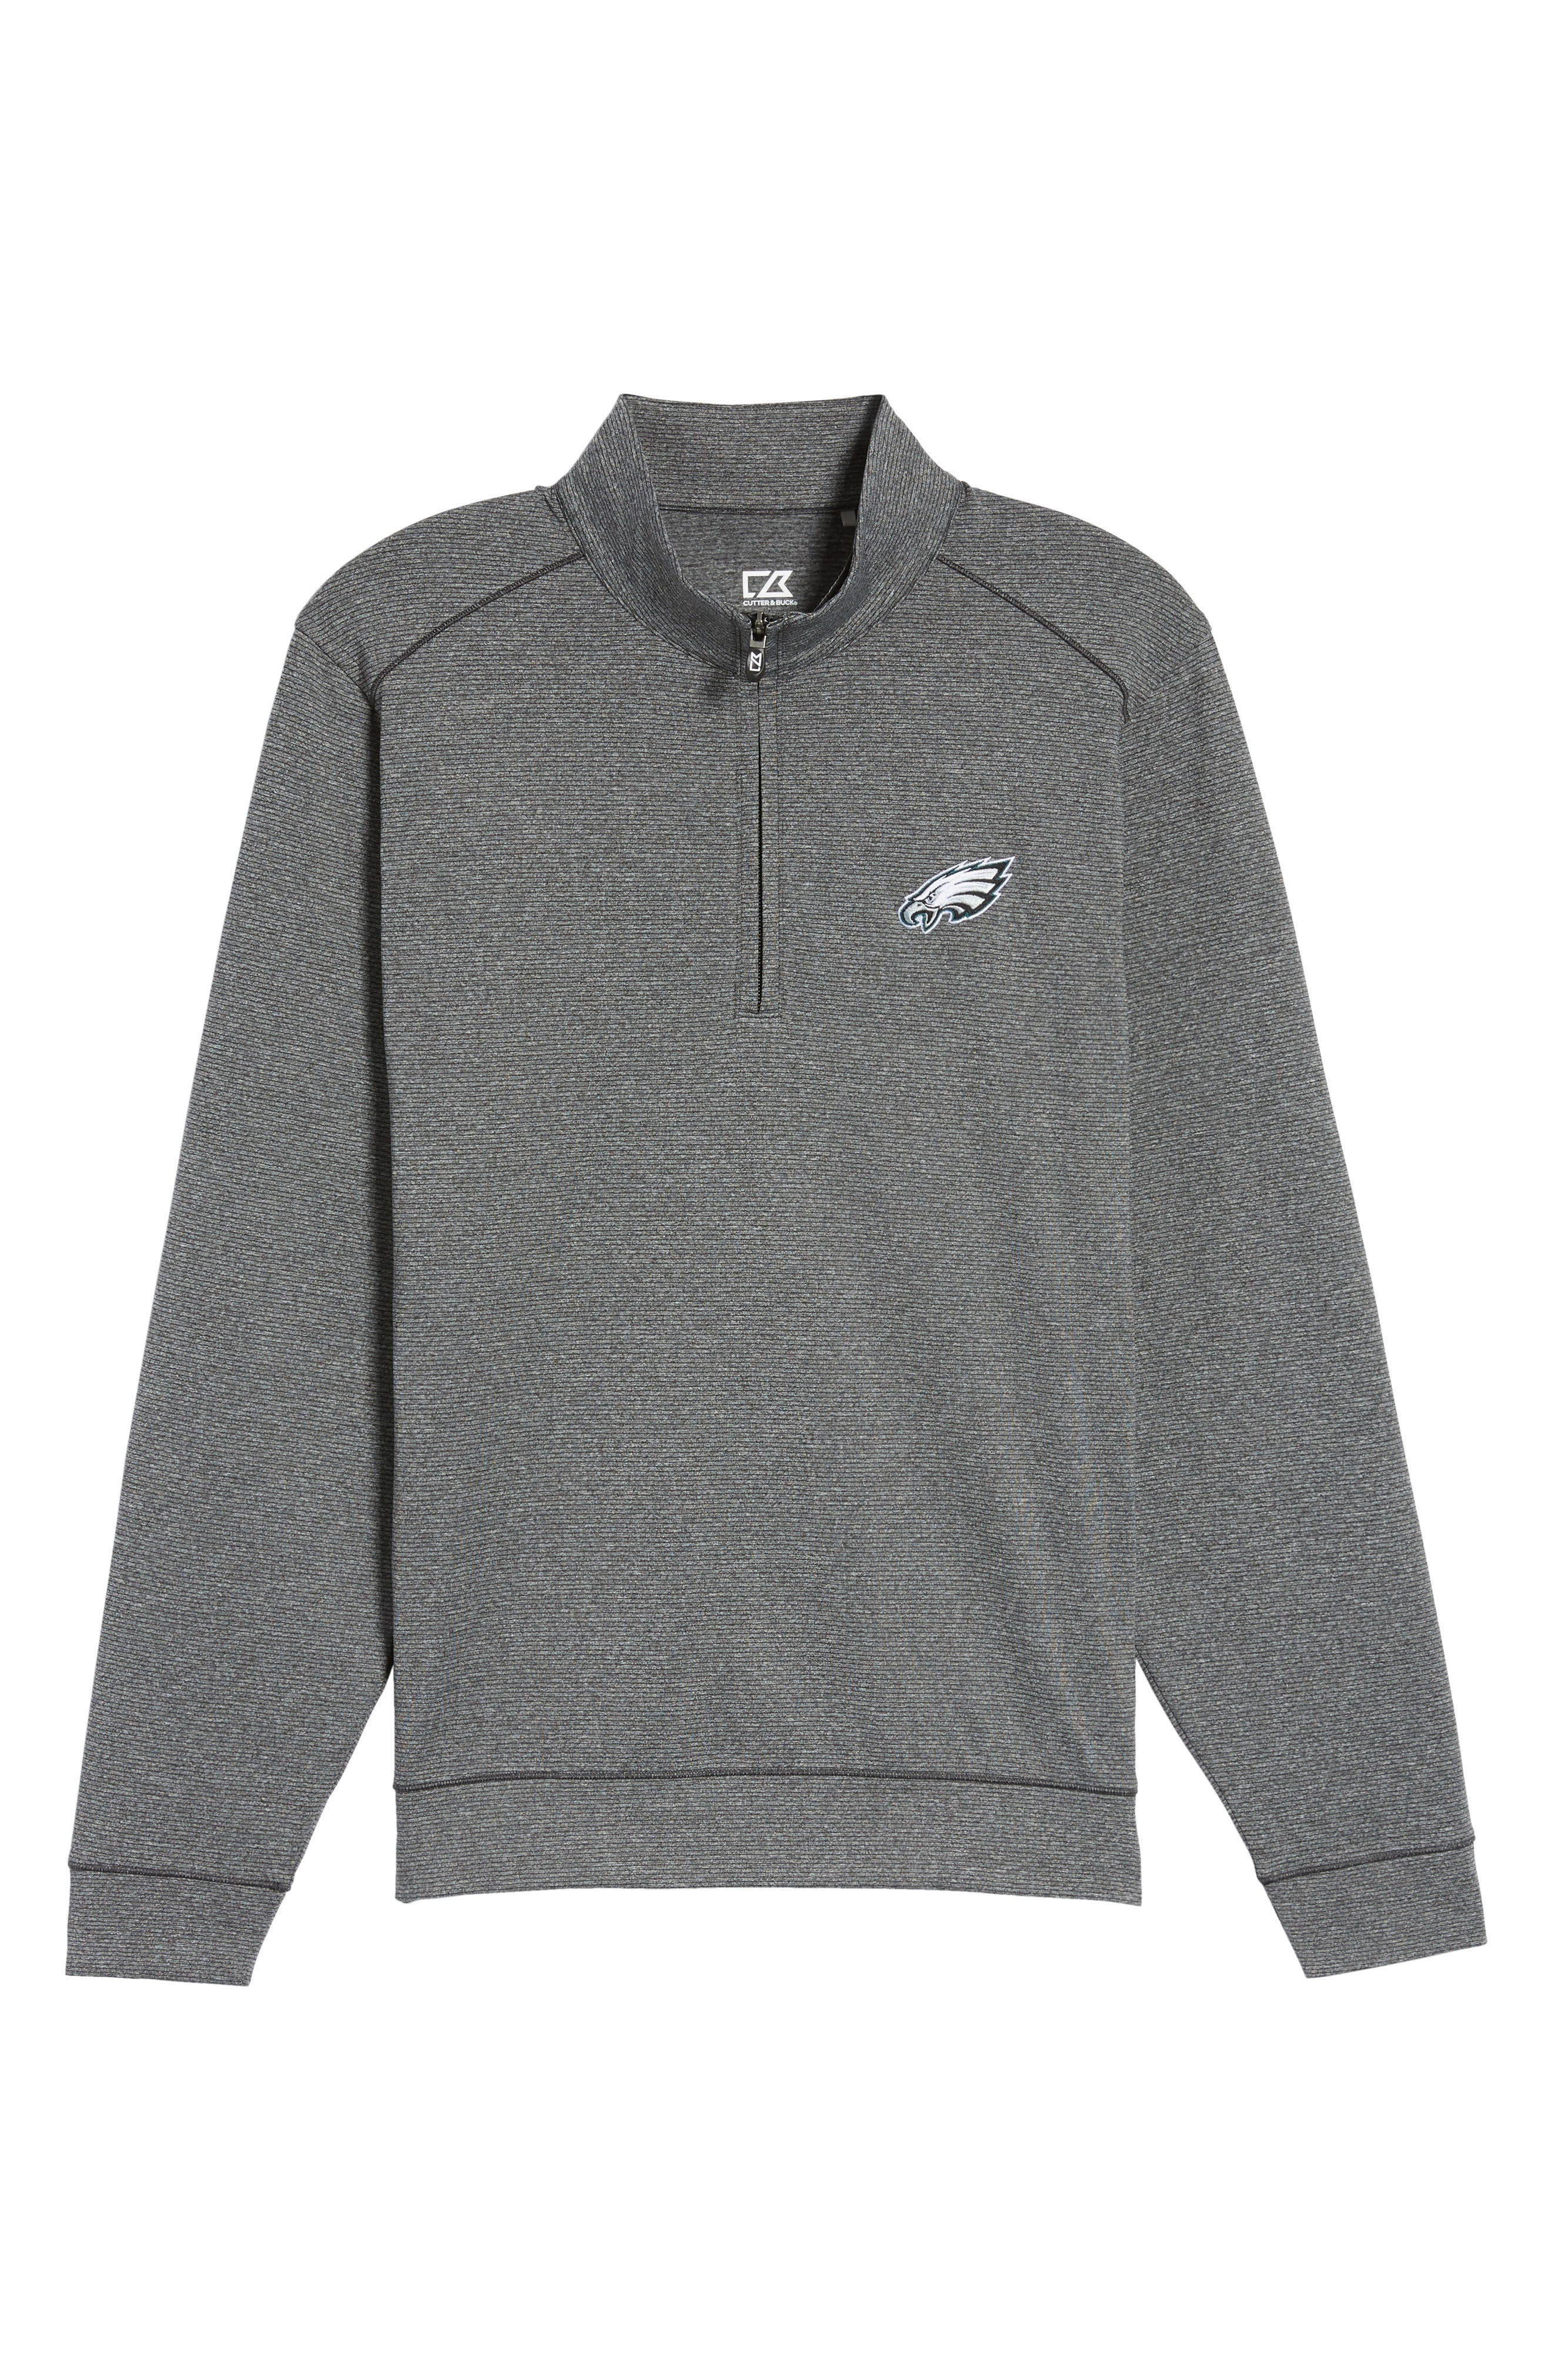 Shoreline - Philadelphia Eagles Half Zip Pullover,                             Alternate thumbnail 6, color,                             Charcoal Heather